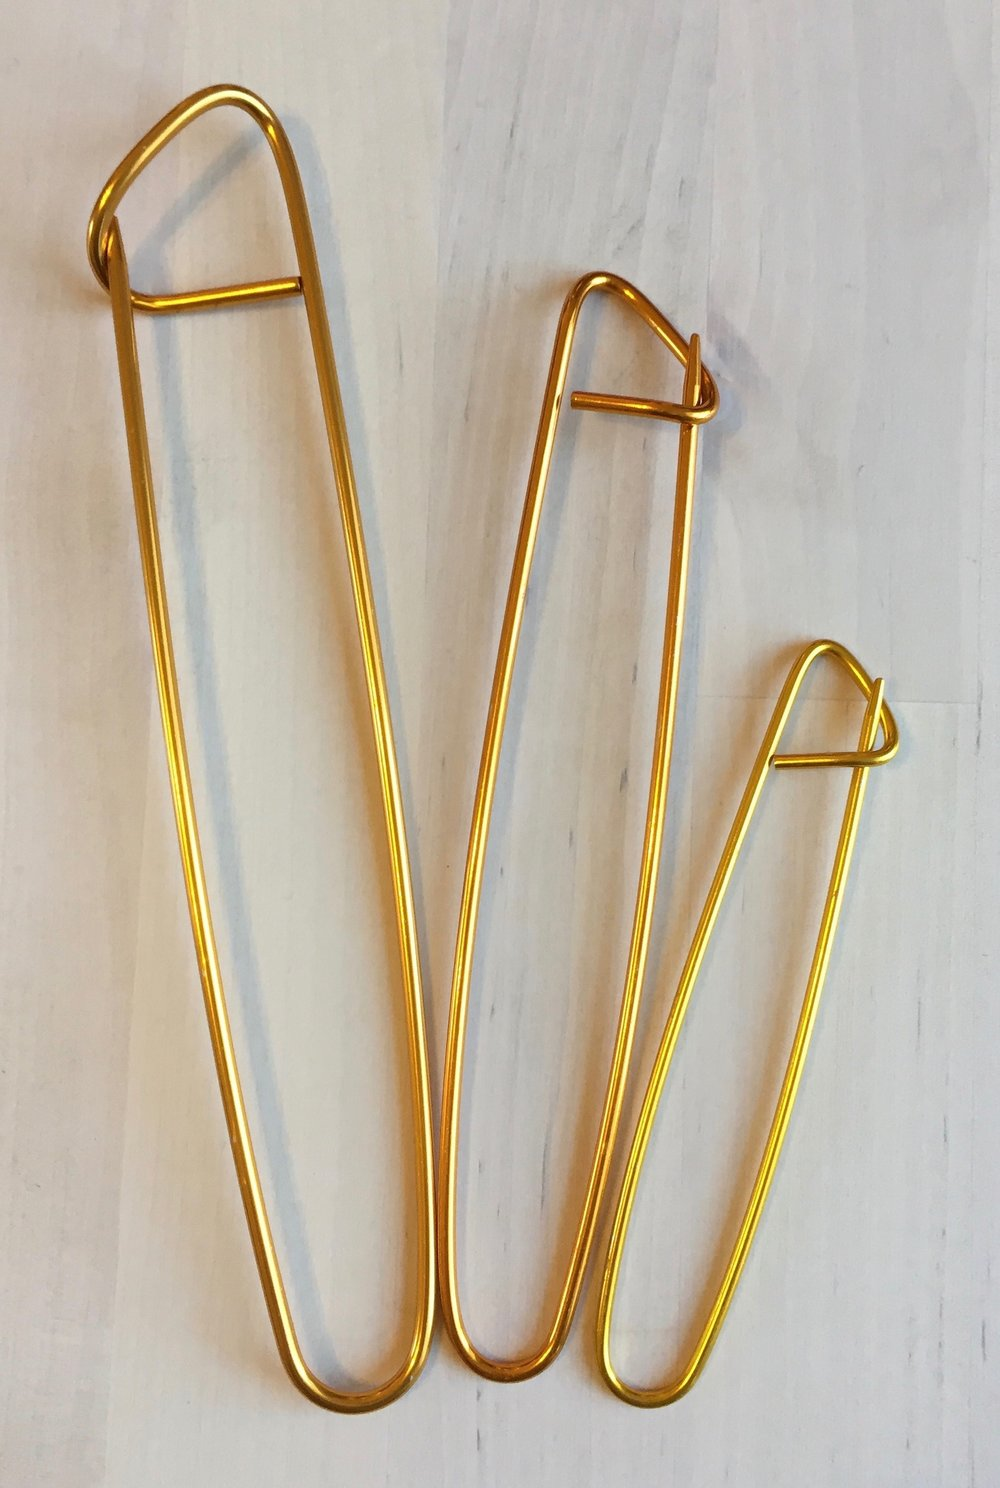 Gold Stitch Holders - pack of 3